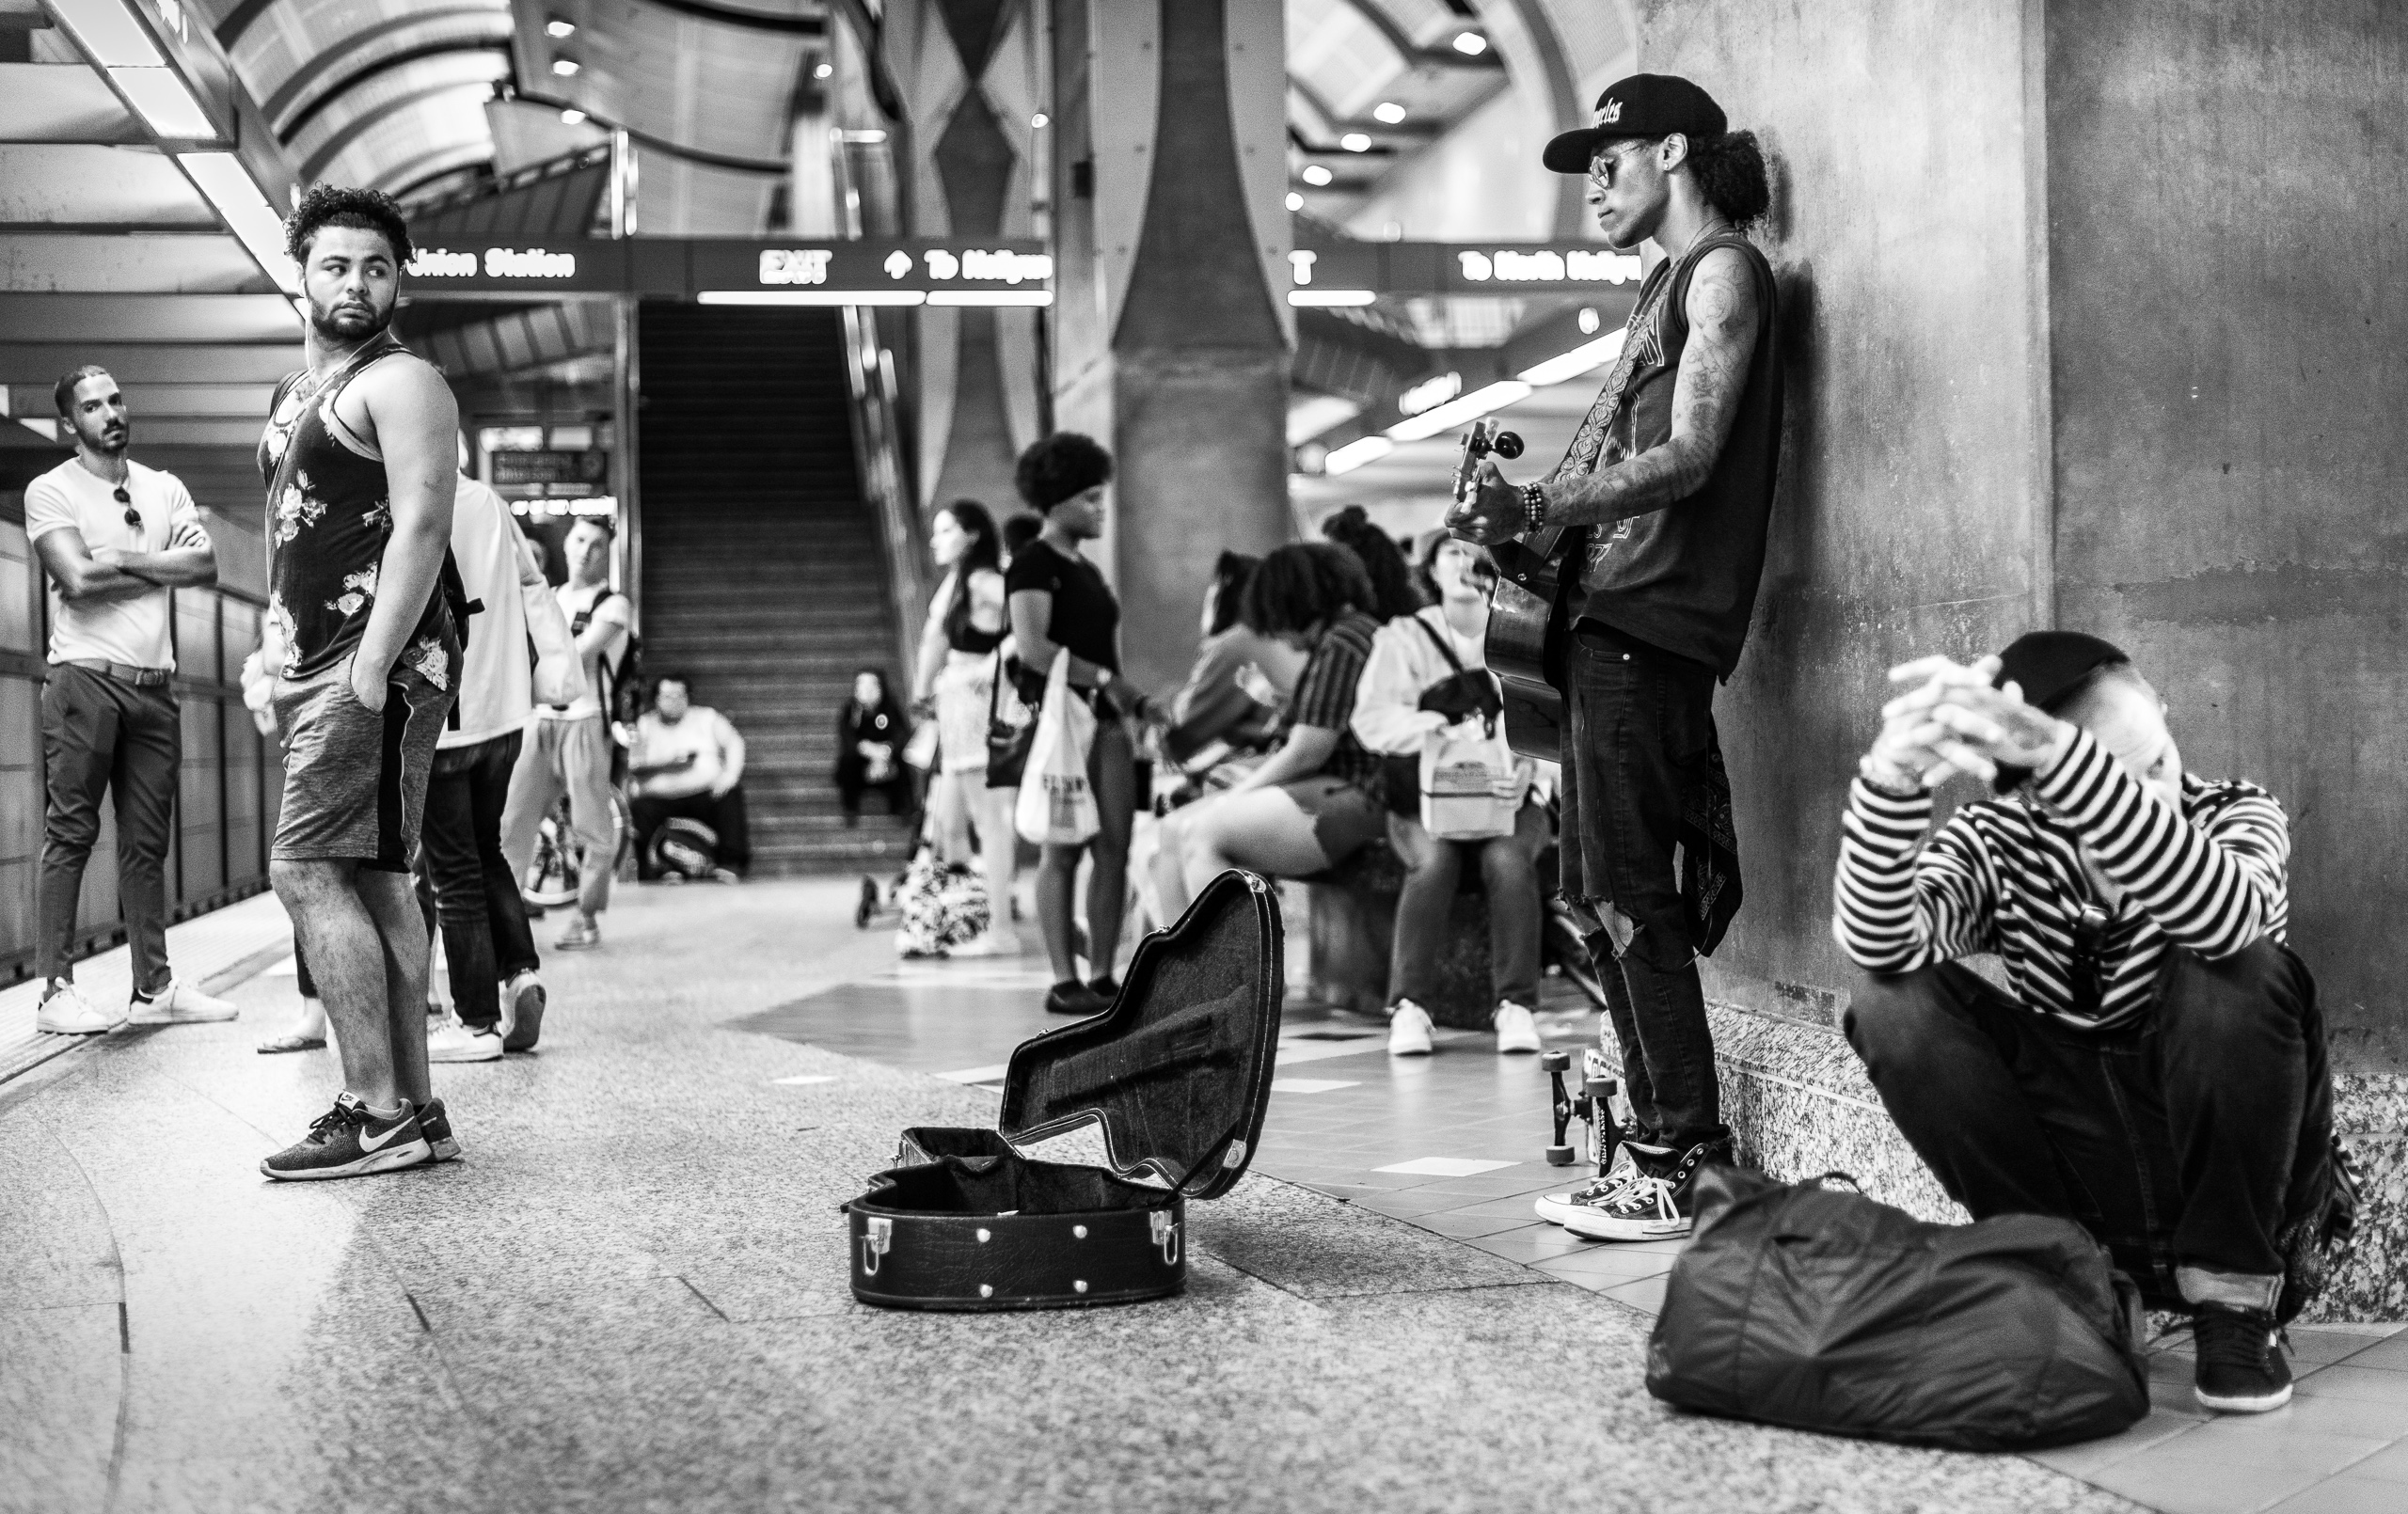 a guy plays guitar as he waits on the Red Line platform at Hollywood & highland